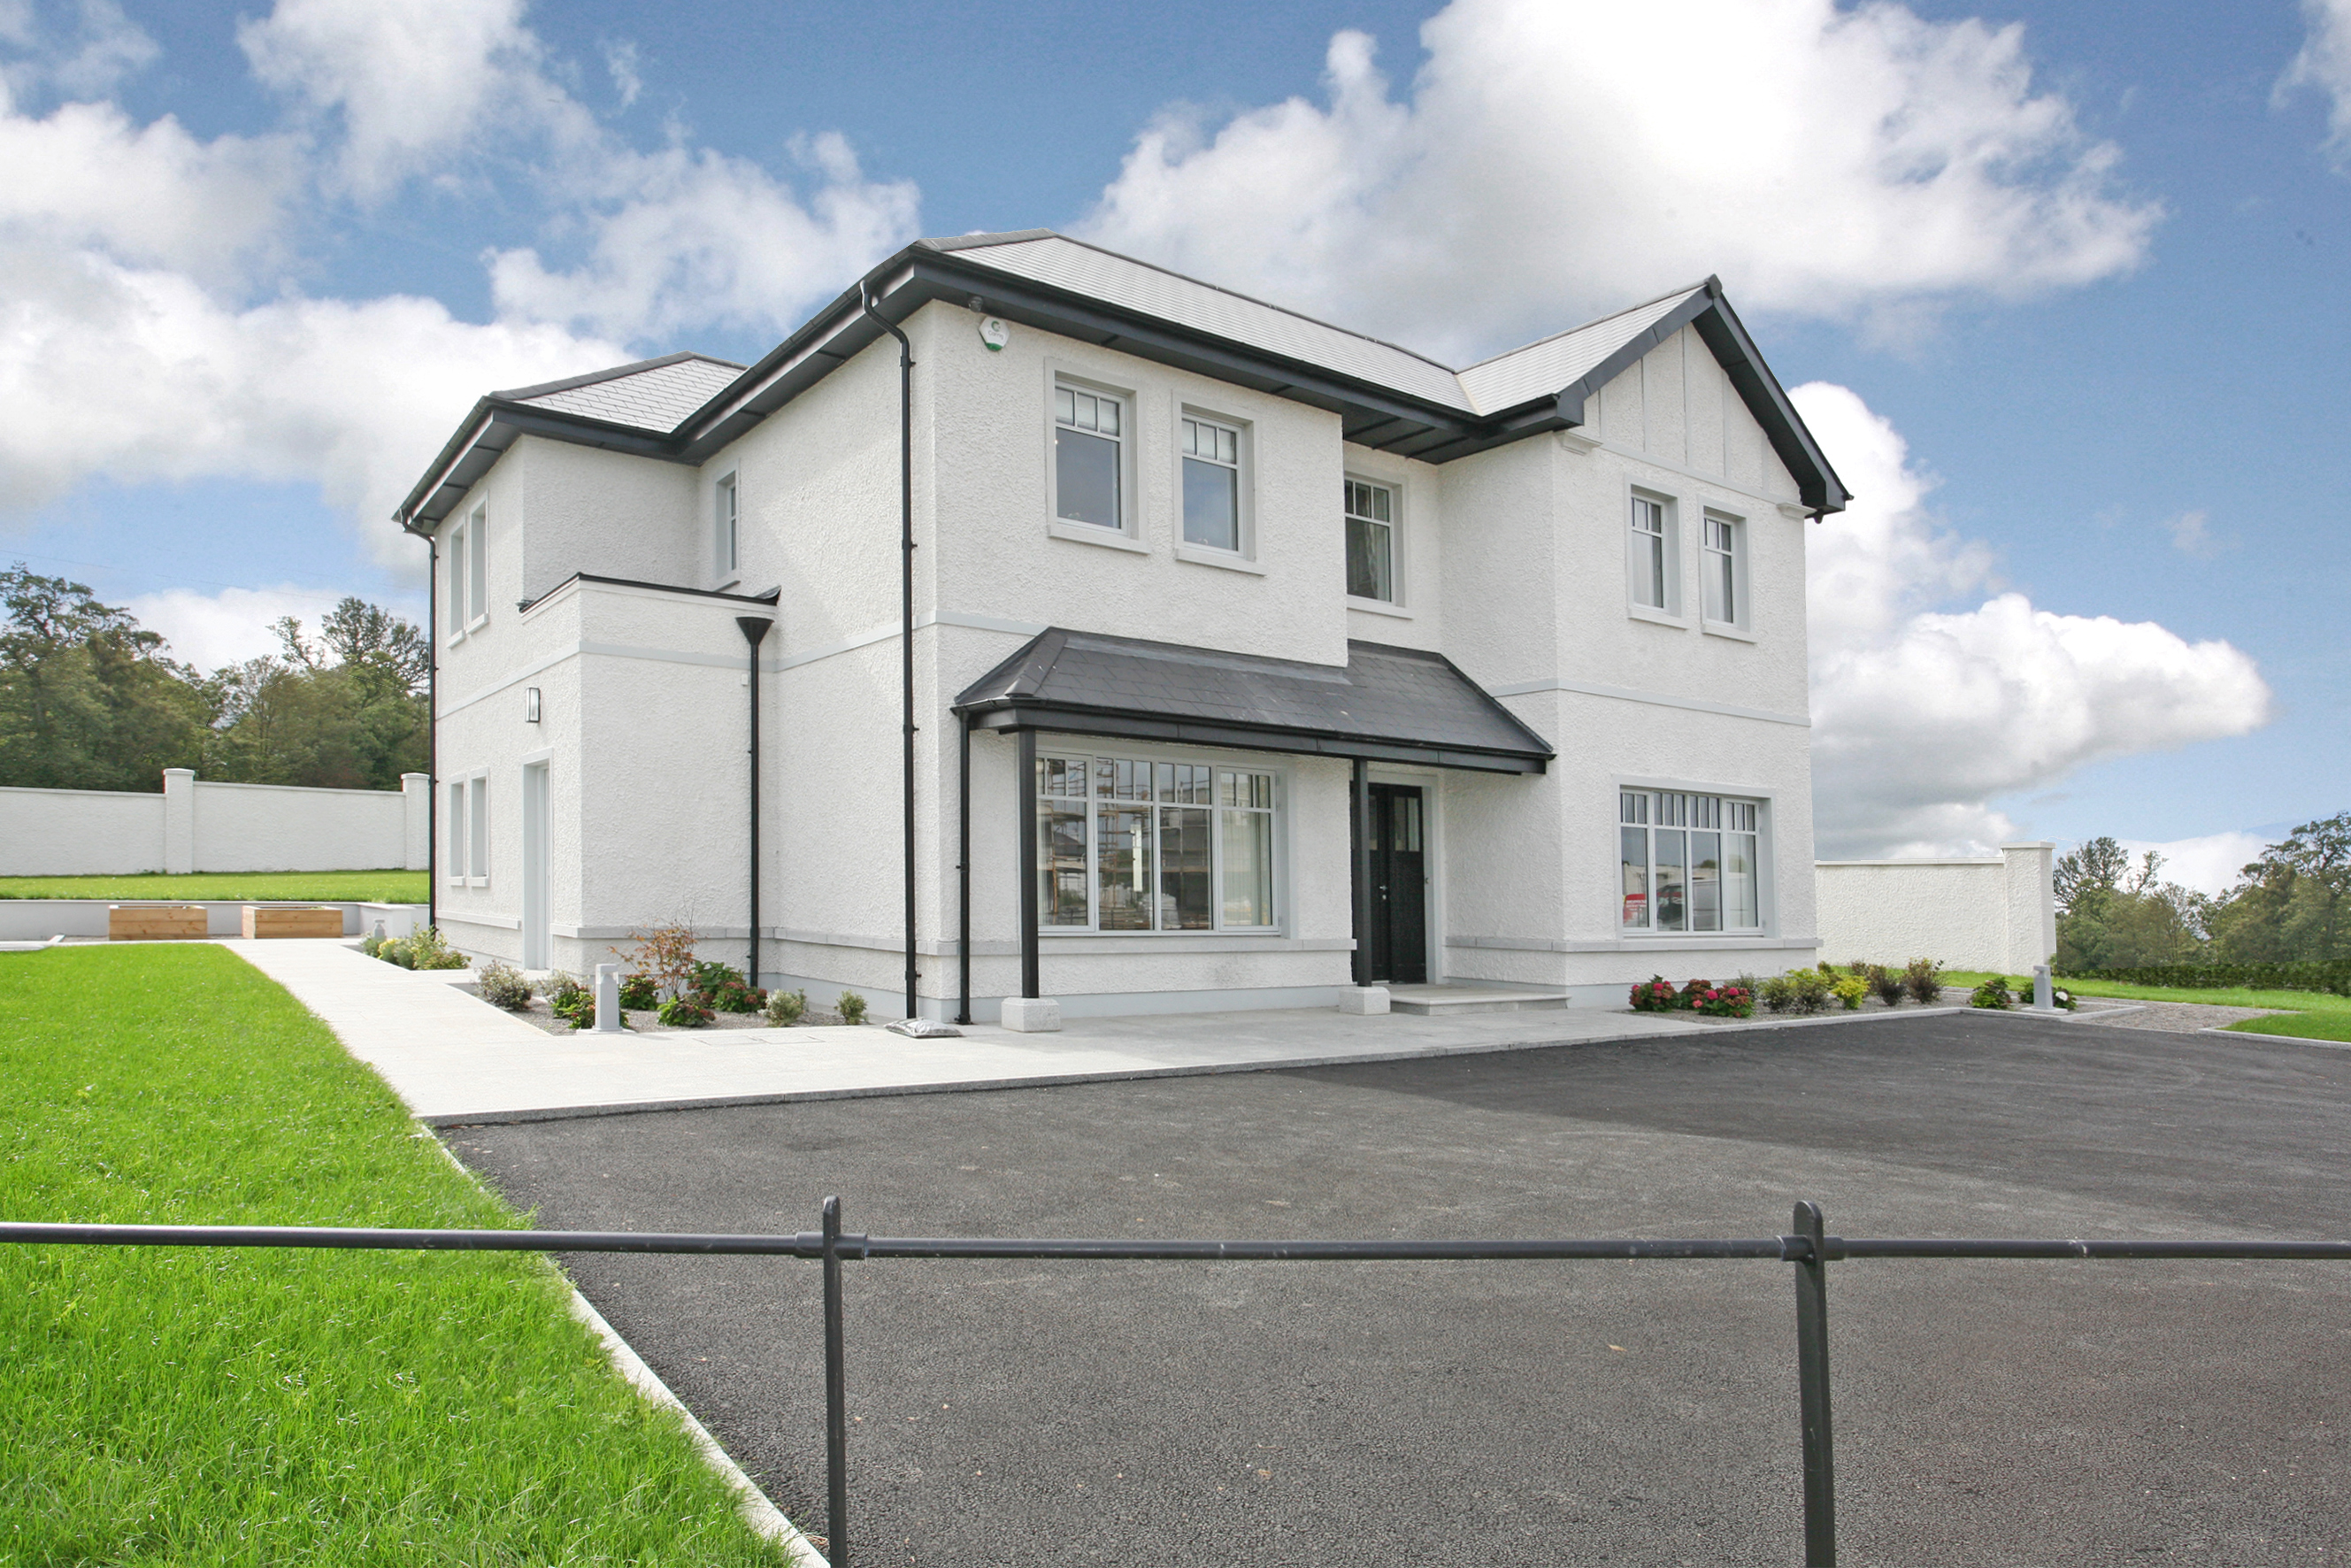 The Heritage - Blackabbey Road , Adare, Limerick